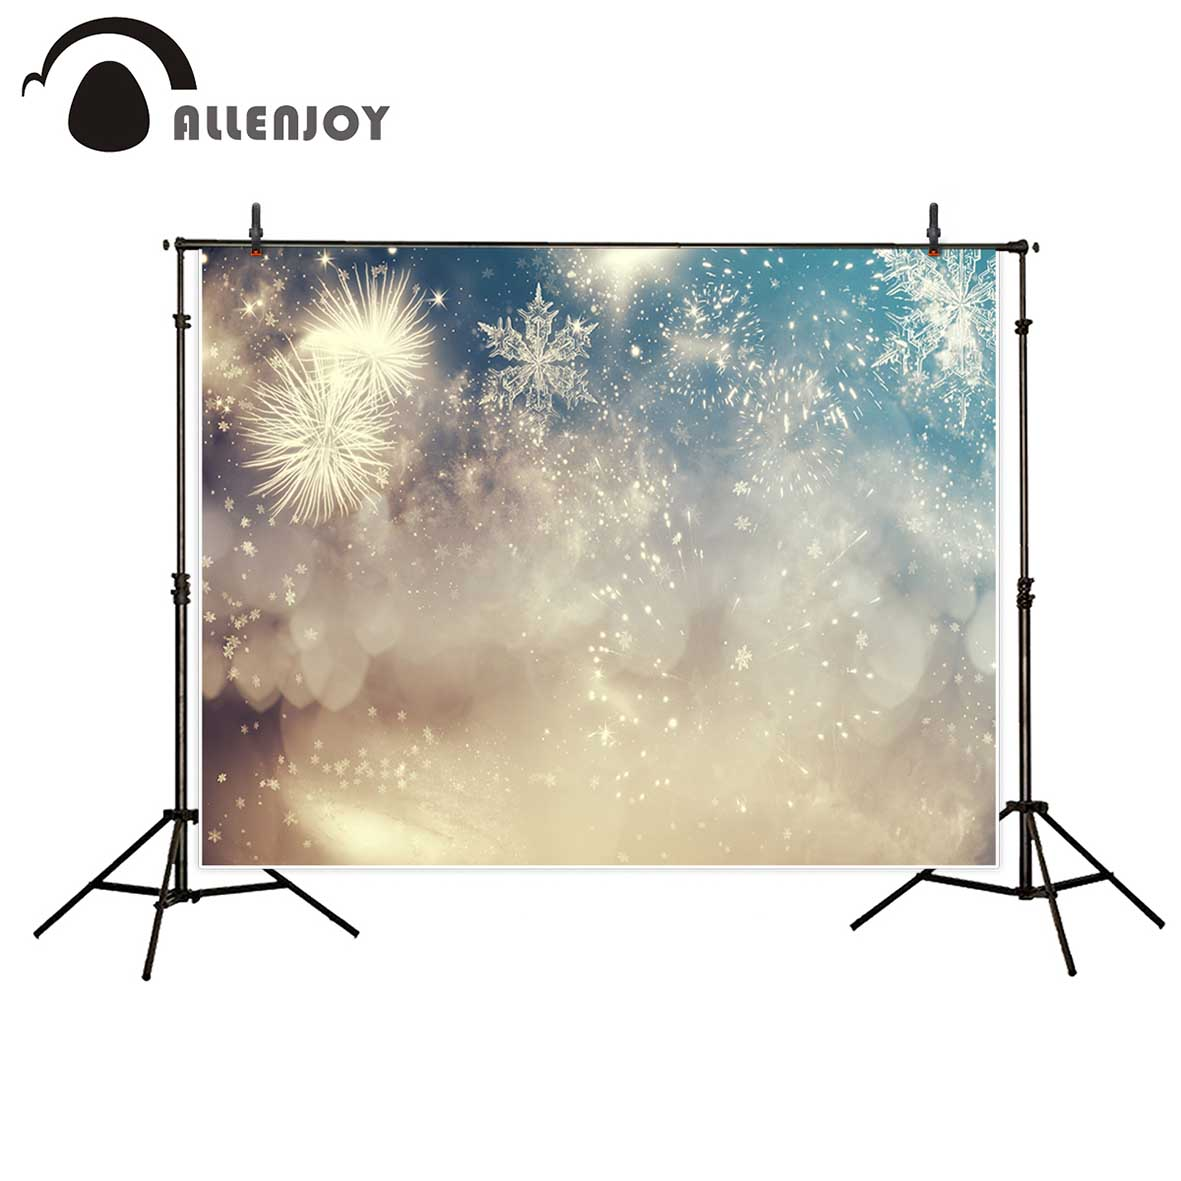 Allenjoy photography background  Christmas Party Winter snow glitter bokeh backdrop Photo background studio camera fotografica allenjoy photography background blue red abstract christmas background golden stars glitter bokeh lights backdrop photo studio